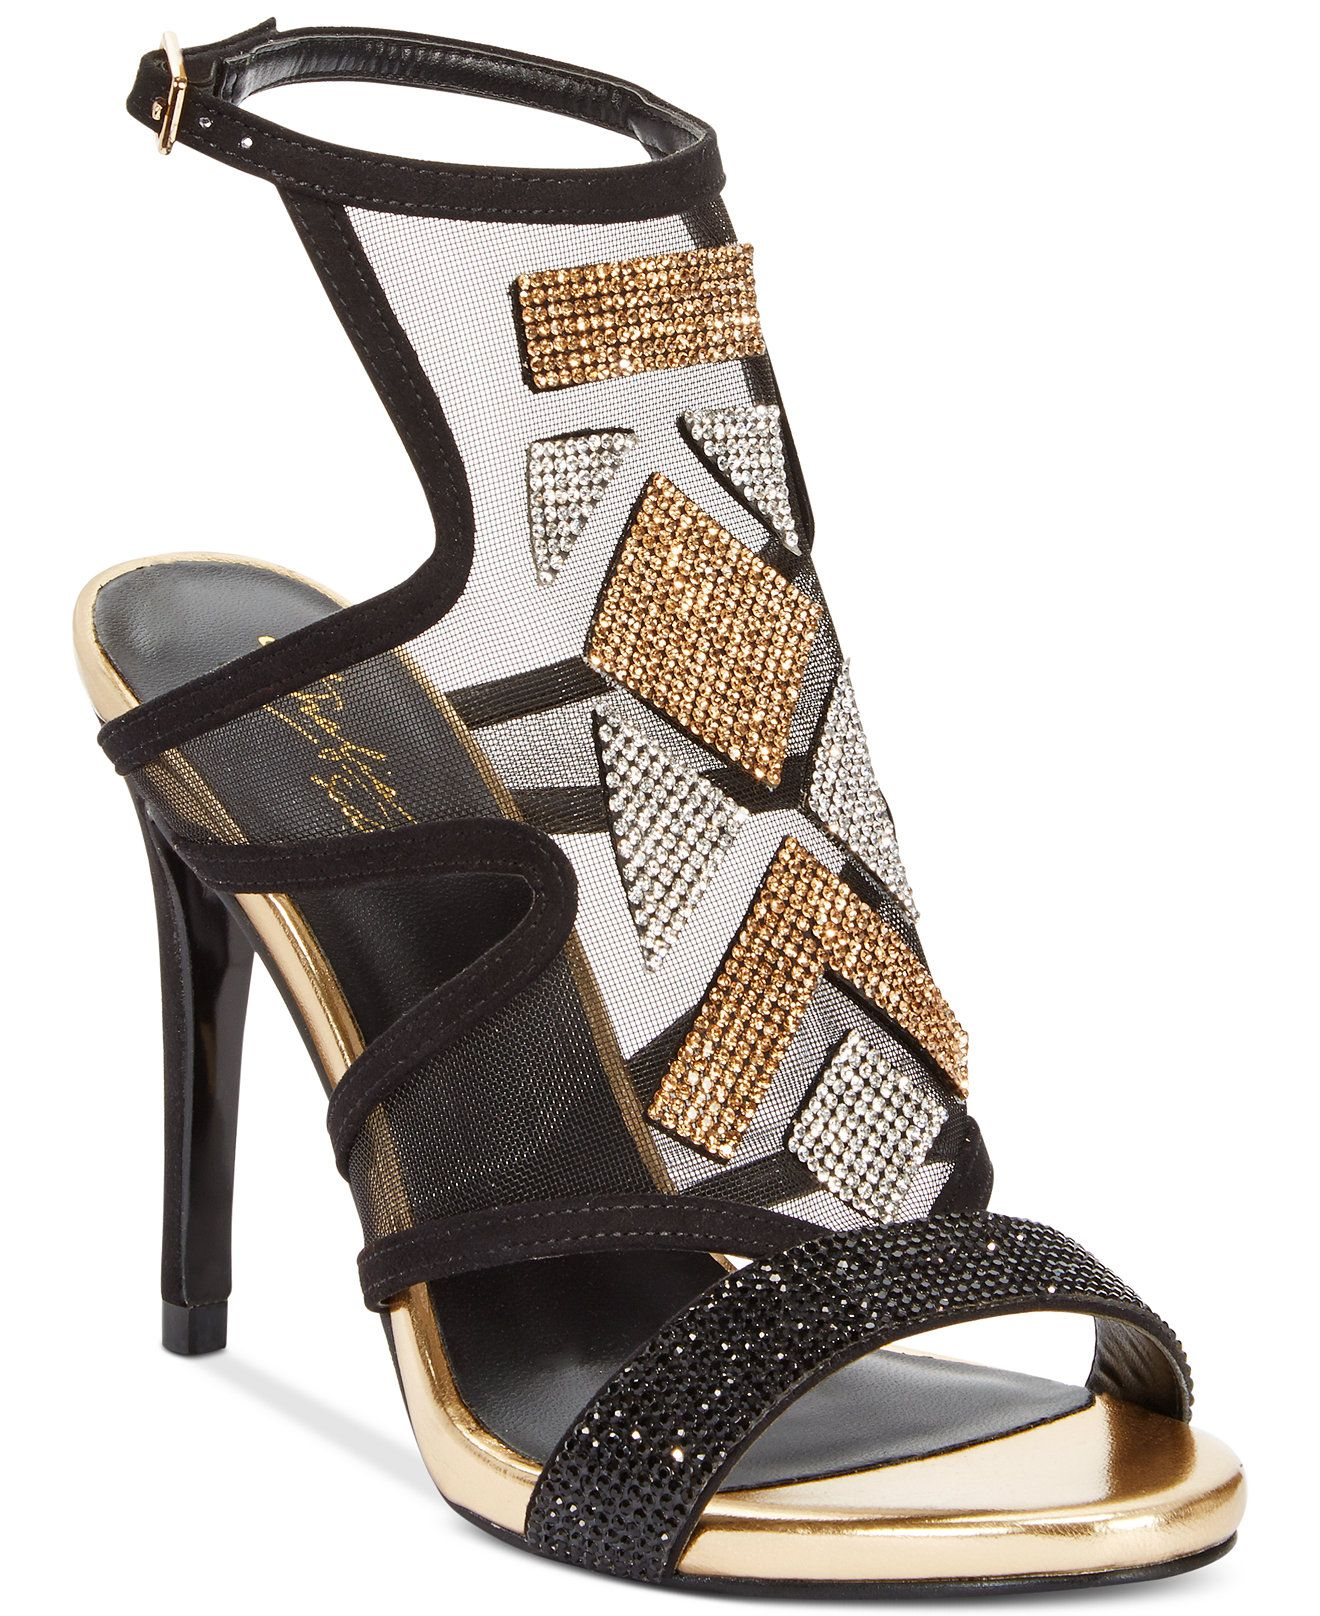 Black sandals at macy's